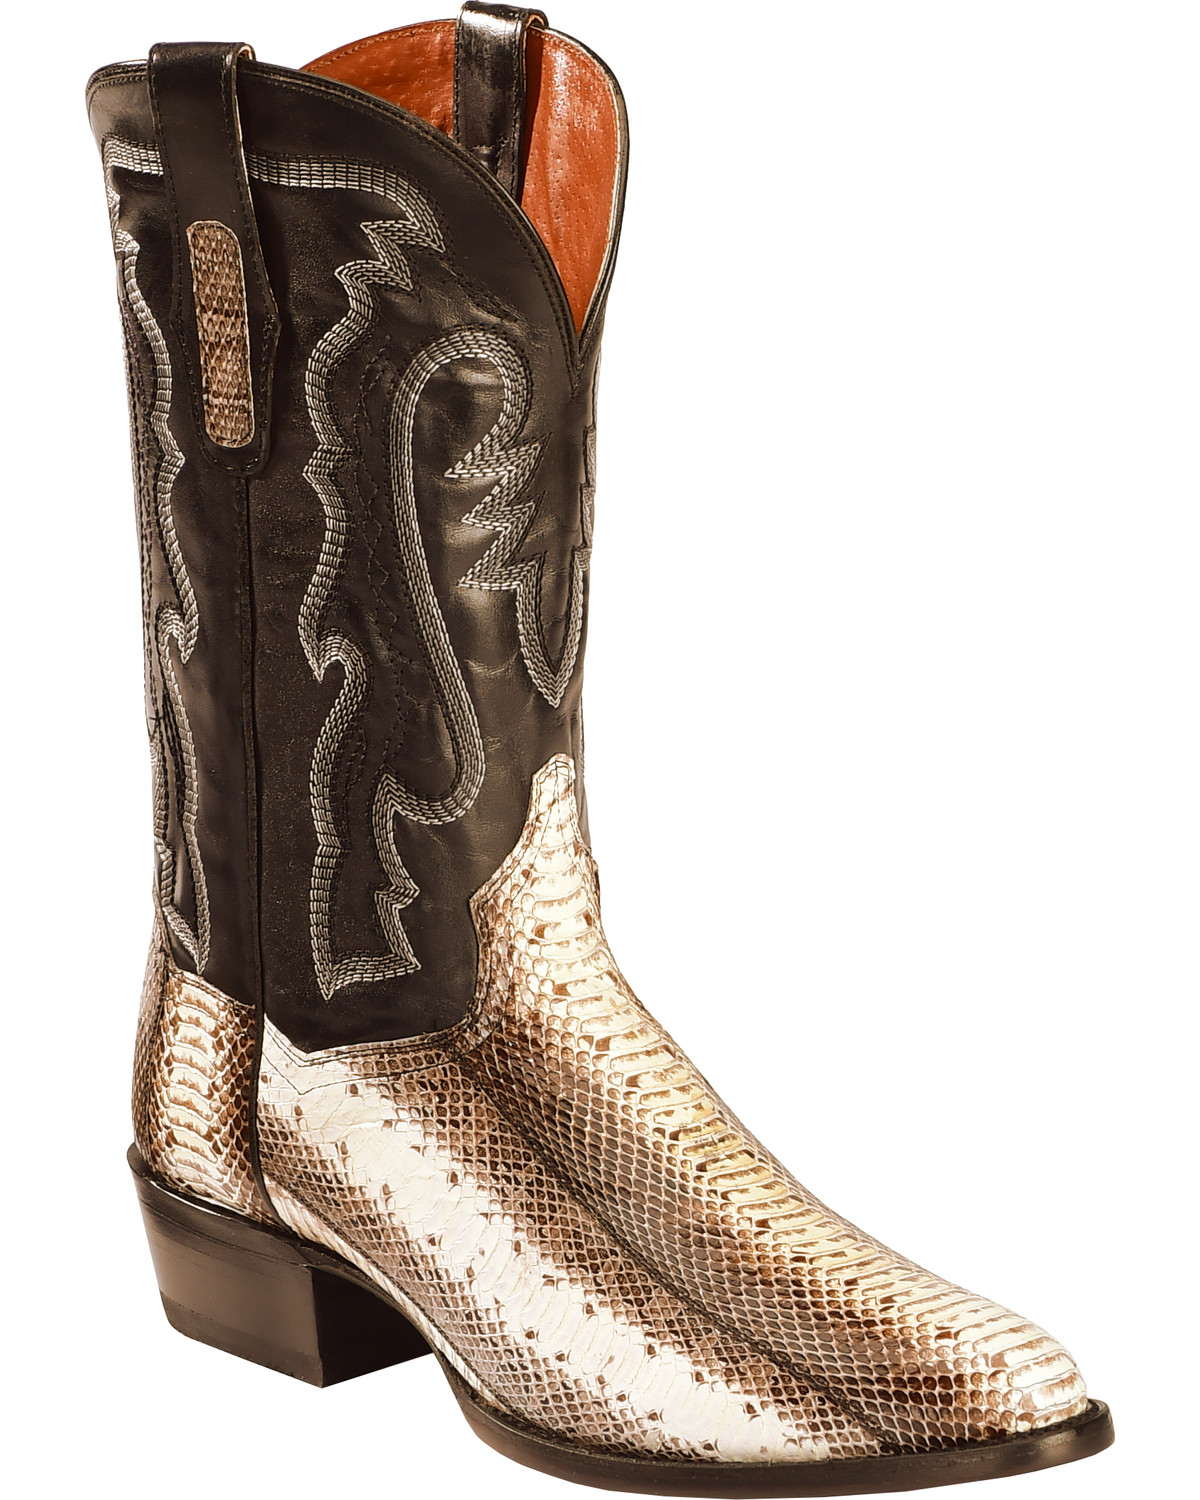 METAL SILVER STAR on TWO-TONE BROWN WESTERN COWGIRL BOOTS fits American Girl